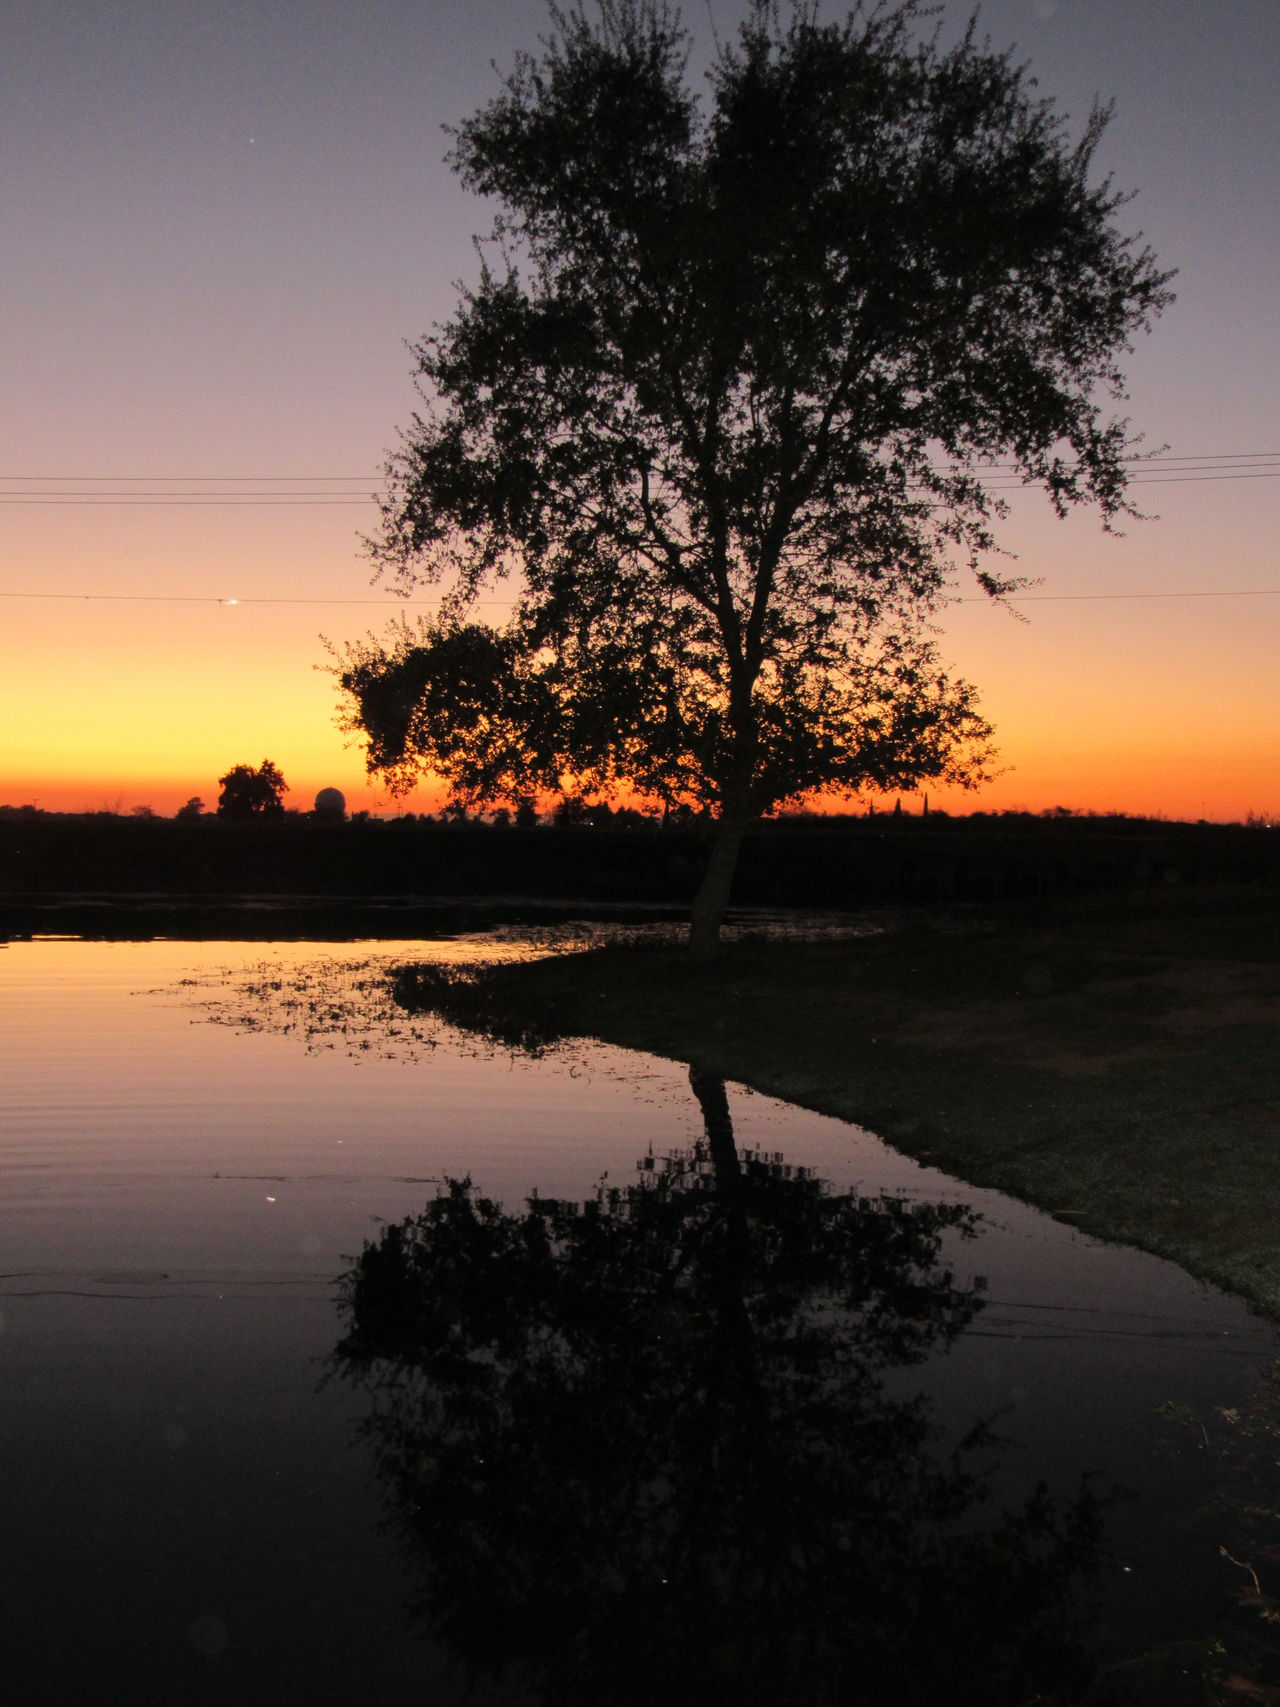 Sunset Reflection Water Tree Nature Orange Color Lake Wet Tranquility Sky Outdoors No People IMYE Loudthougts Take A Walk With Me